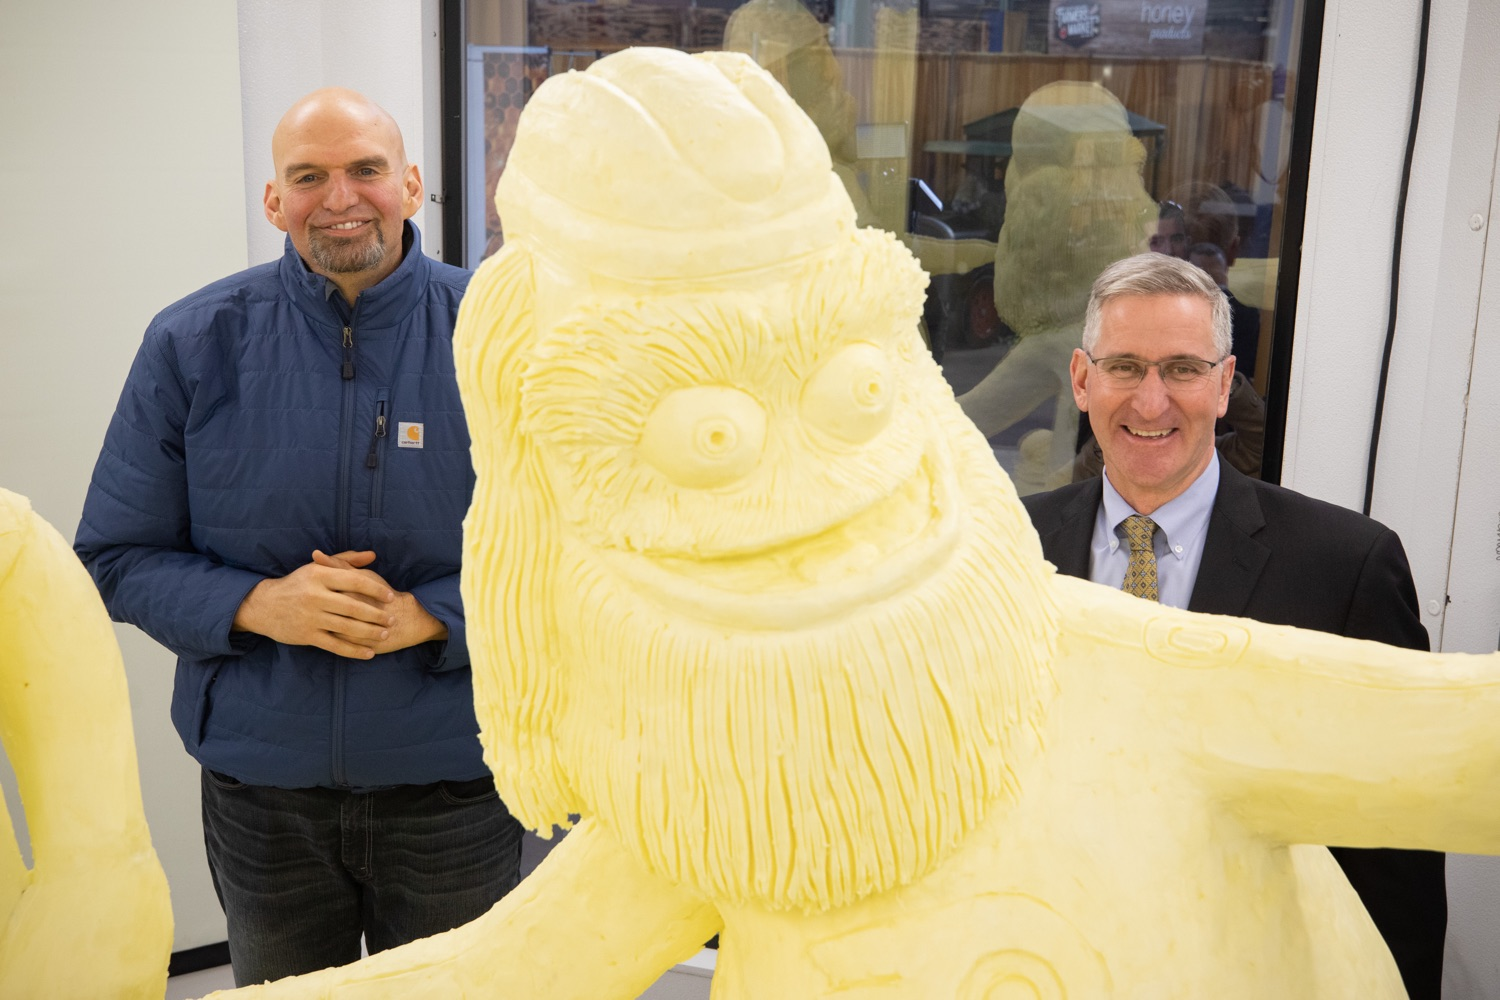 "<a href=""http://filesource.abacast.com/commonwealthofpa/photo/17646_agric_butter_sculpture_dz_023.jpg"" target=""_blank"">⇣ Download Photo<br></a>Lt. Governor John Fetterman,  and Secretary of Agriculture Russell Redding at the Pennsylvania Farm Show butter sculpture.  Lt. Governor John Fetterman and Secretary of Agriculture Russell Redding today unveiled the 2020 Pennsylvania Farm Show butter sculpture, carved from a half-ton of butter depicting three of Pennsylvanias beloved professional sports mascots: Philadelphia Flyers Gritty, Philadelphia Eagles Swoop, and Pittsburgh Steelers Steely McBeam celebrating with a spread of Pennsylvania dairy products. The sculpture, a long-time Farm Show staple, encourages Pennsylvanians to be a fan of Pennsylvania dairy and give a cheer to the more than 6,200 dairy farmers in the commonwealth.  Harrisburg, PA  January 2, 2020"